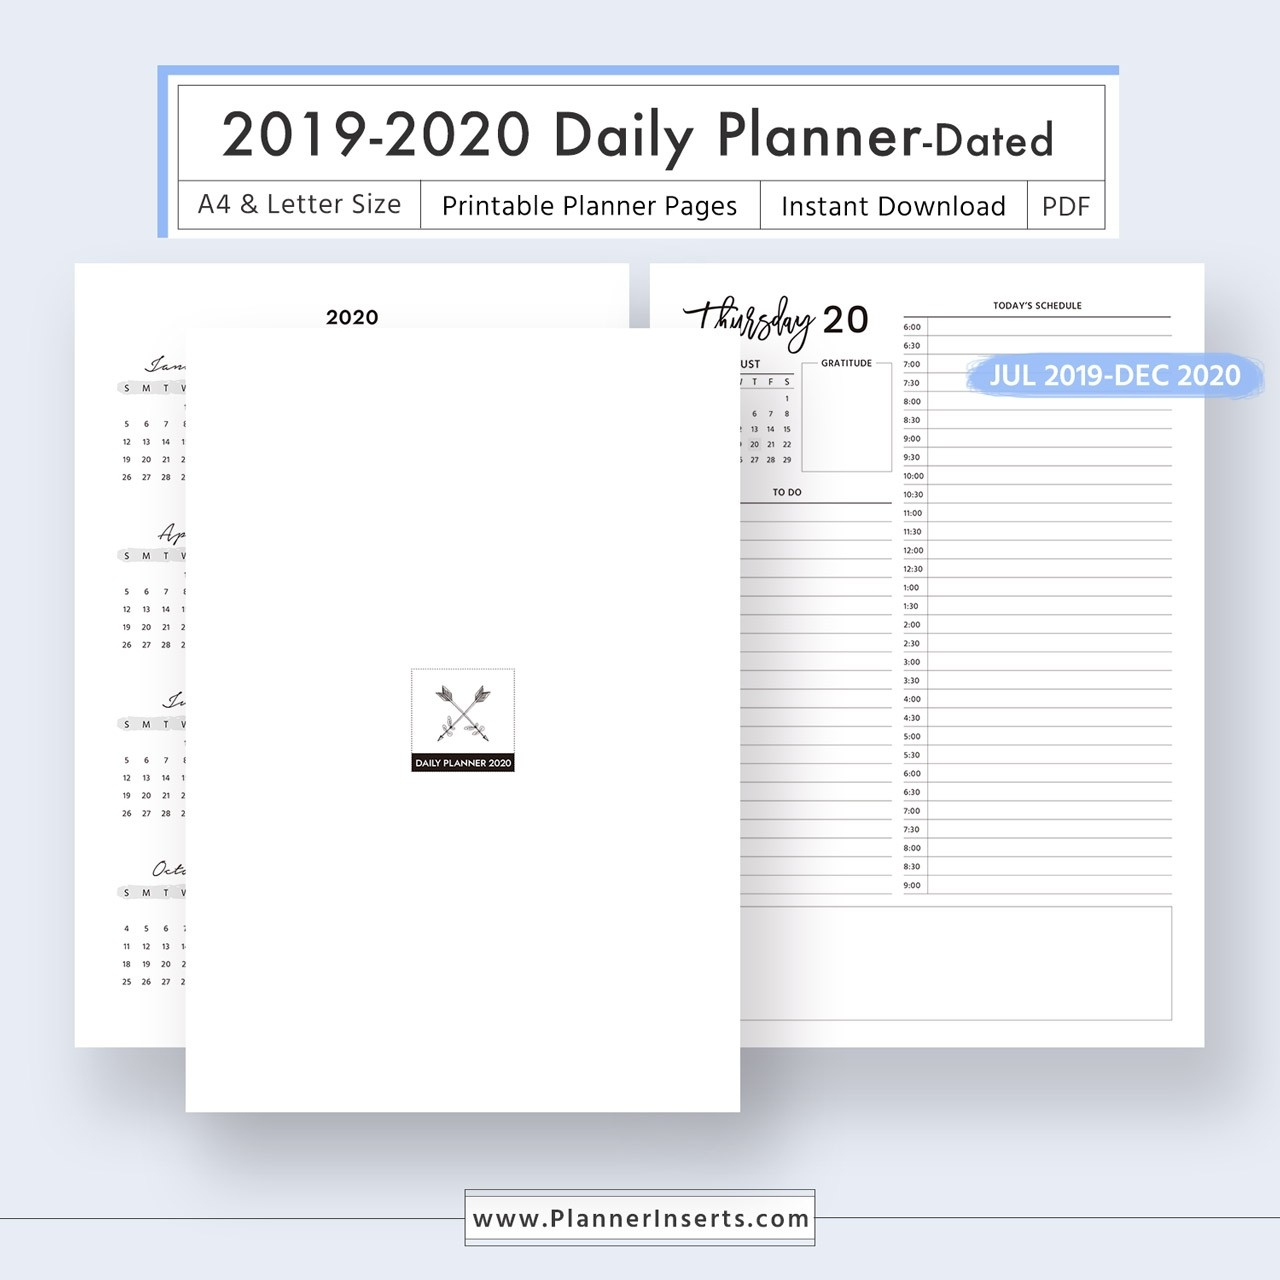 2019-2020 Dated Daily Planner For Unlimited Instant Download - Digital  Printable Planner Inserts In .pdf Format - A4 & Letter Size - Daily  Organizer,  26.catholic Daily Planner Template